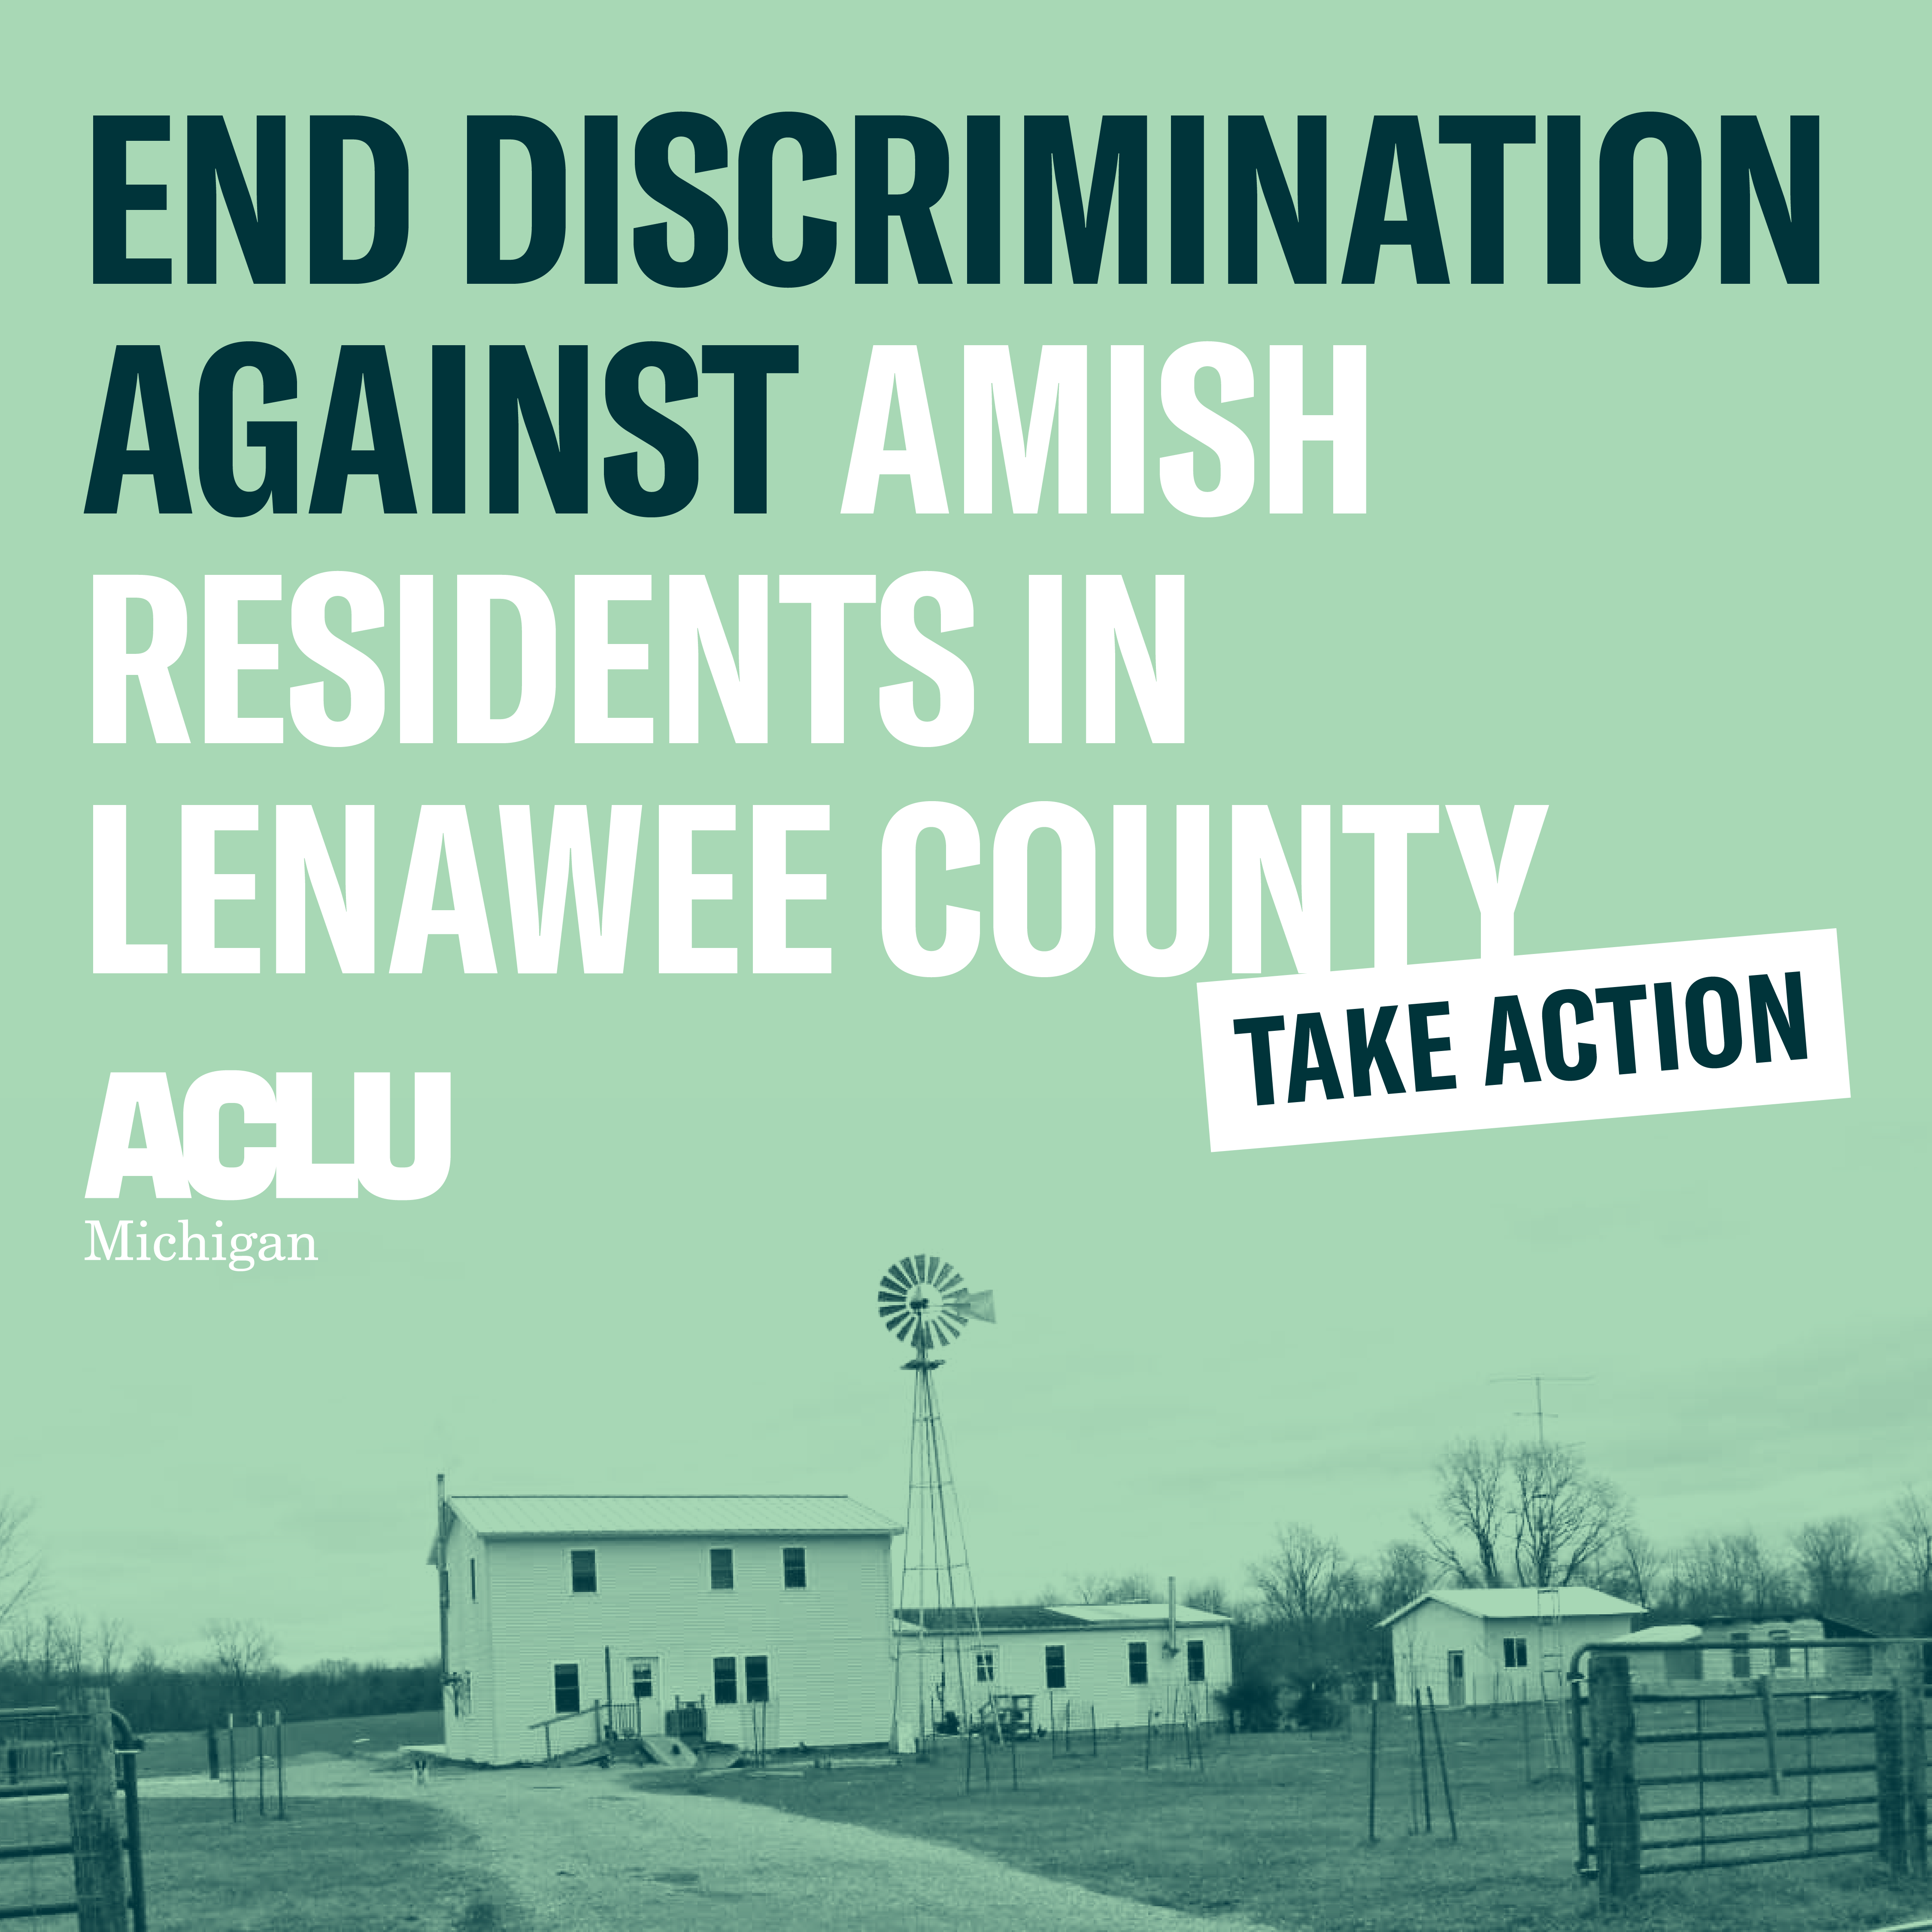 Tell Lenawee County Commissioners to End Discrimination Against Amish Residents